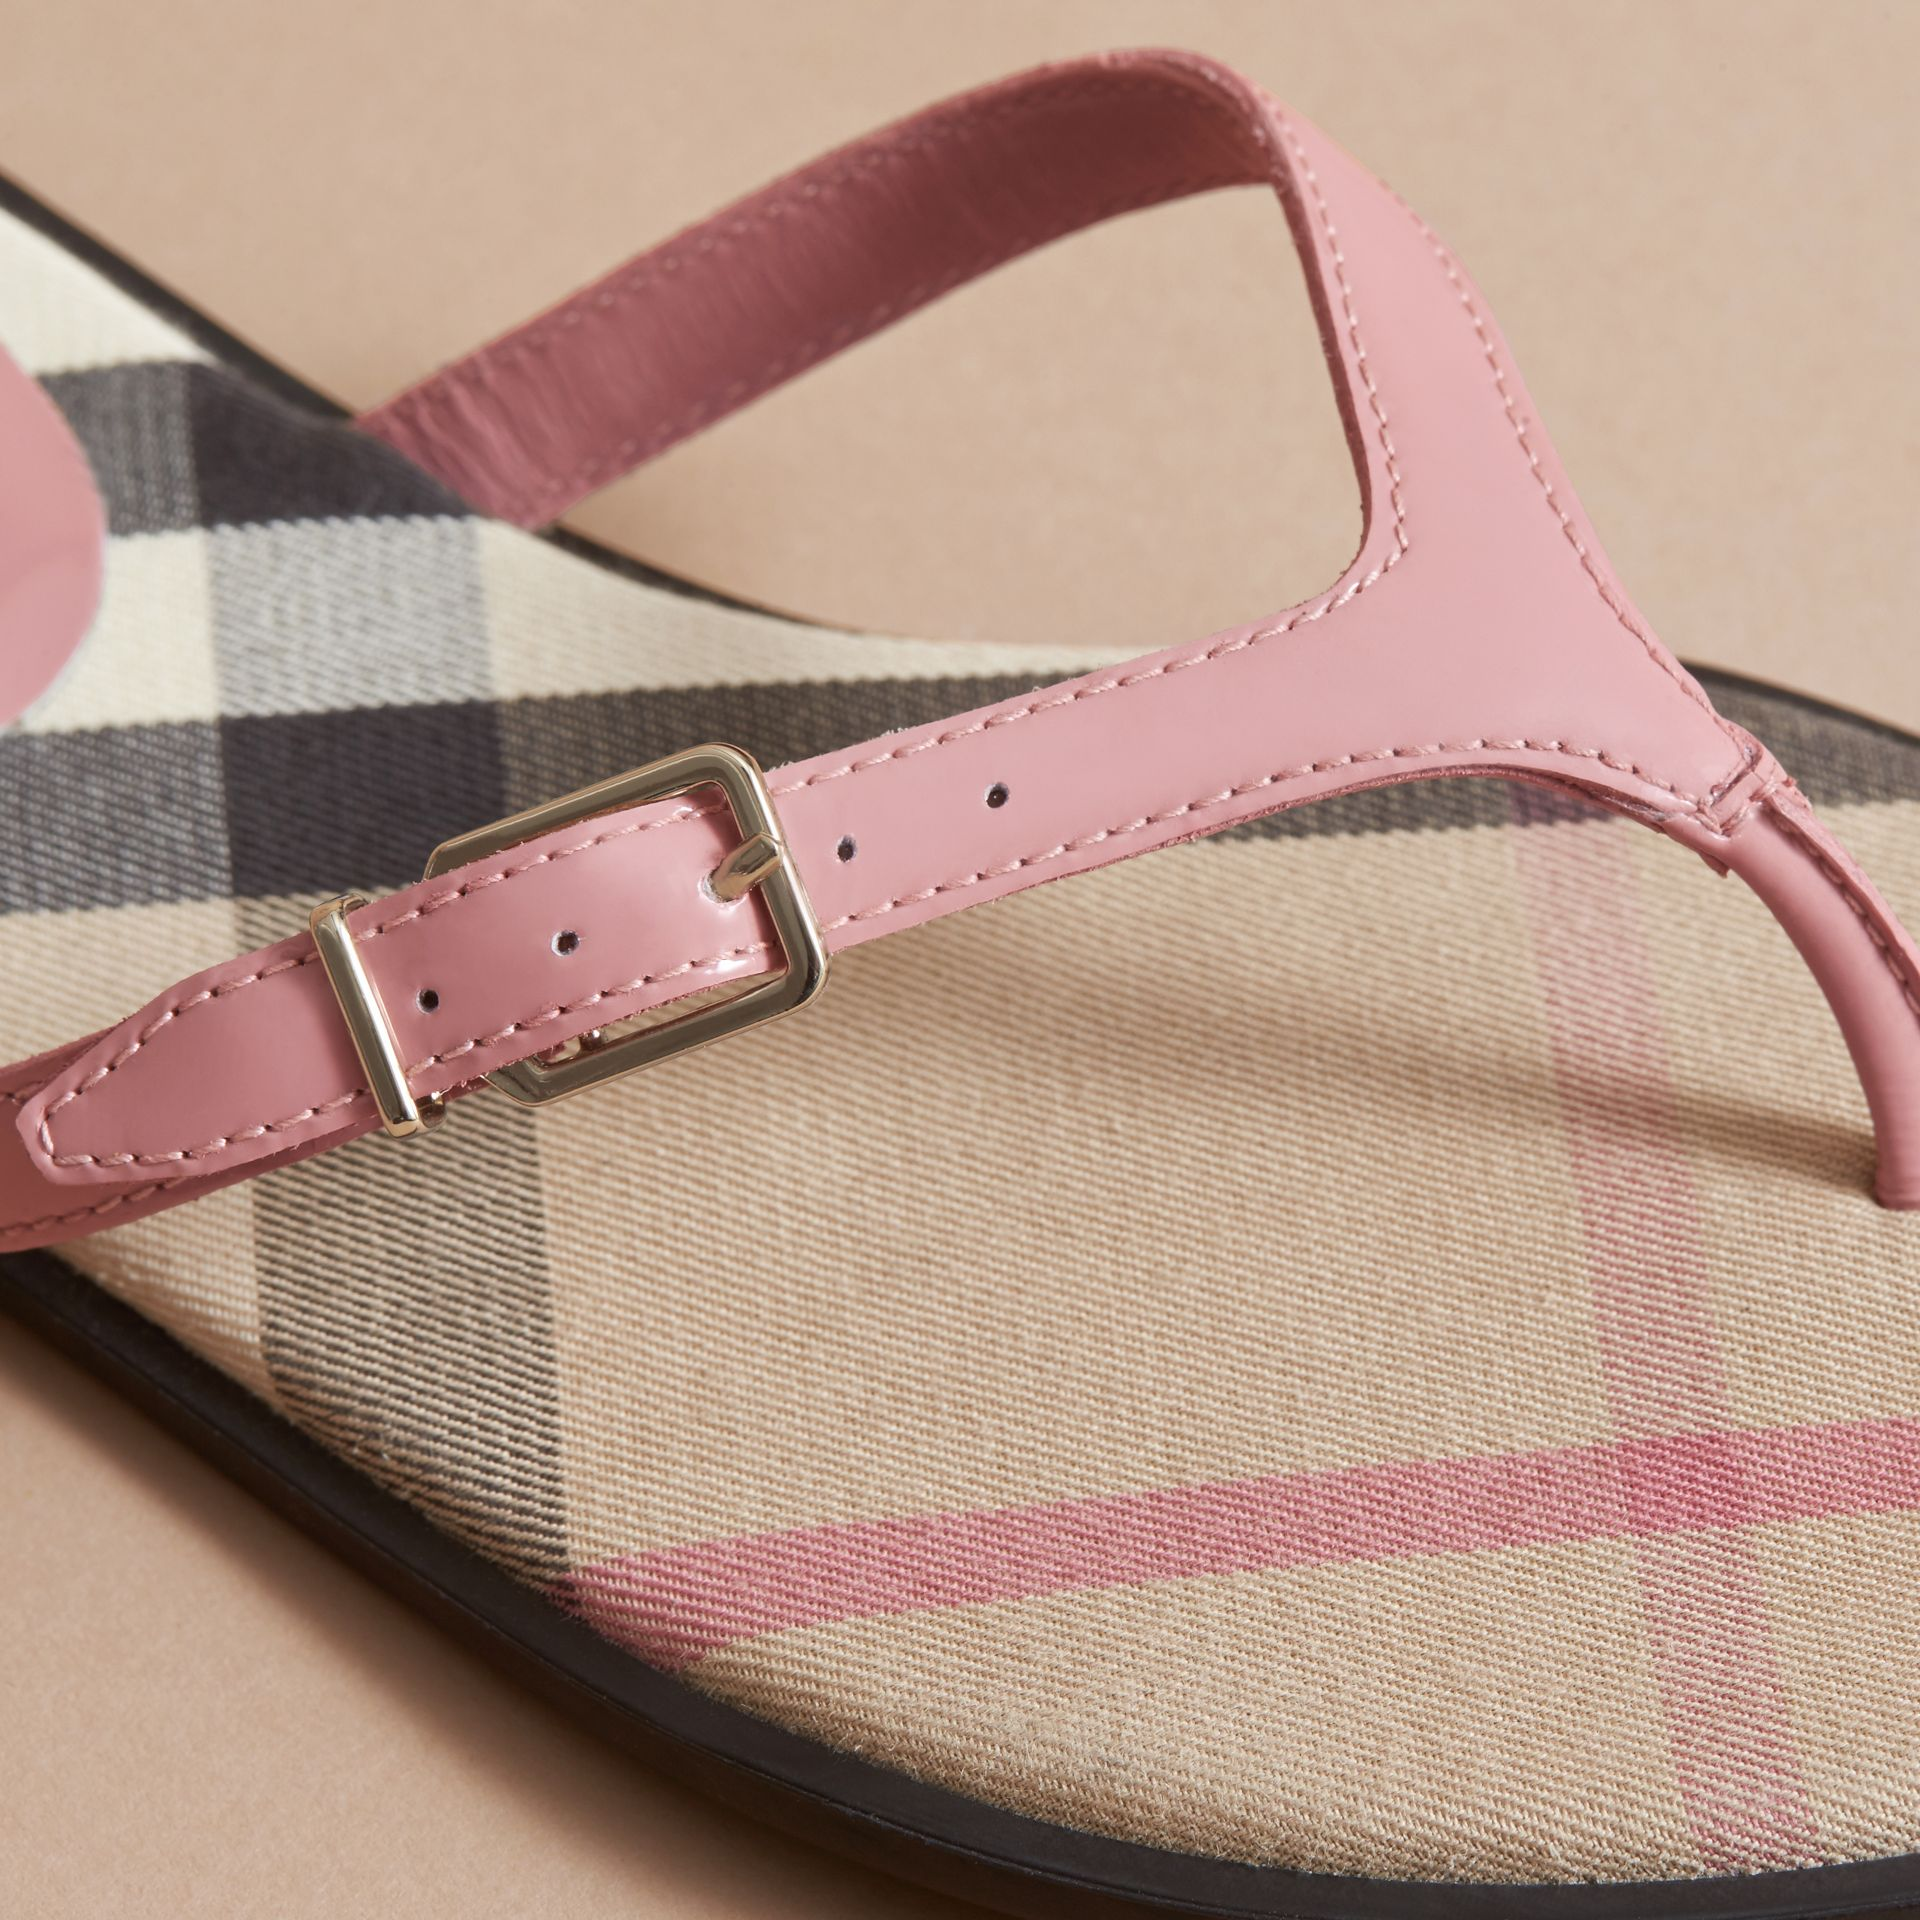 House Check and Patent Leather Sandals in Nude Pink - Women | Burberry - gallery image 1